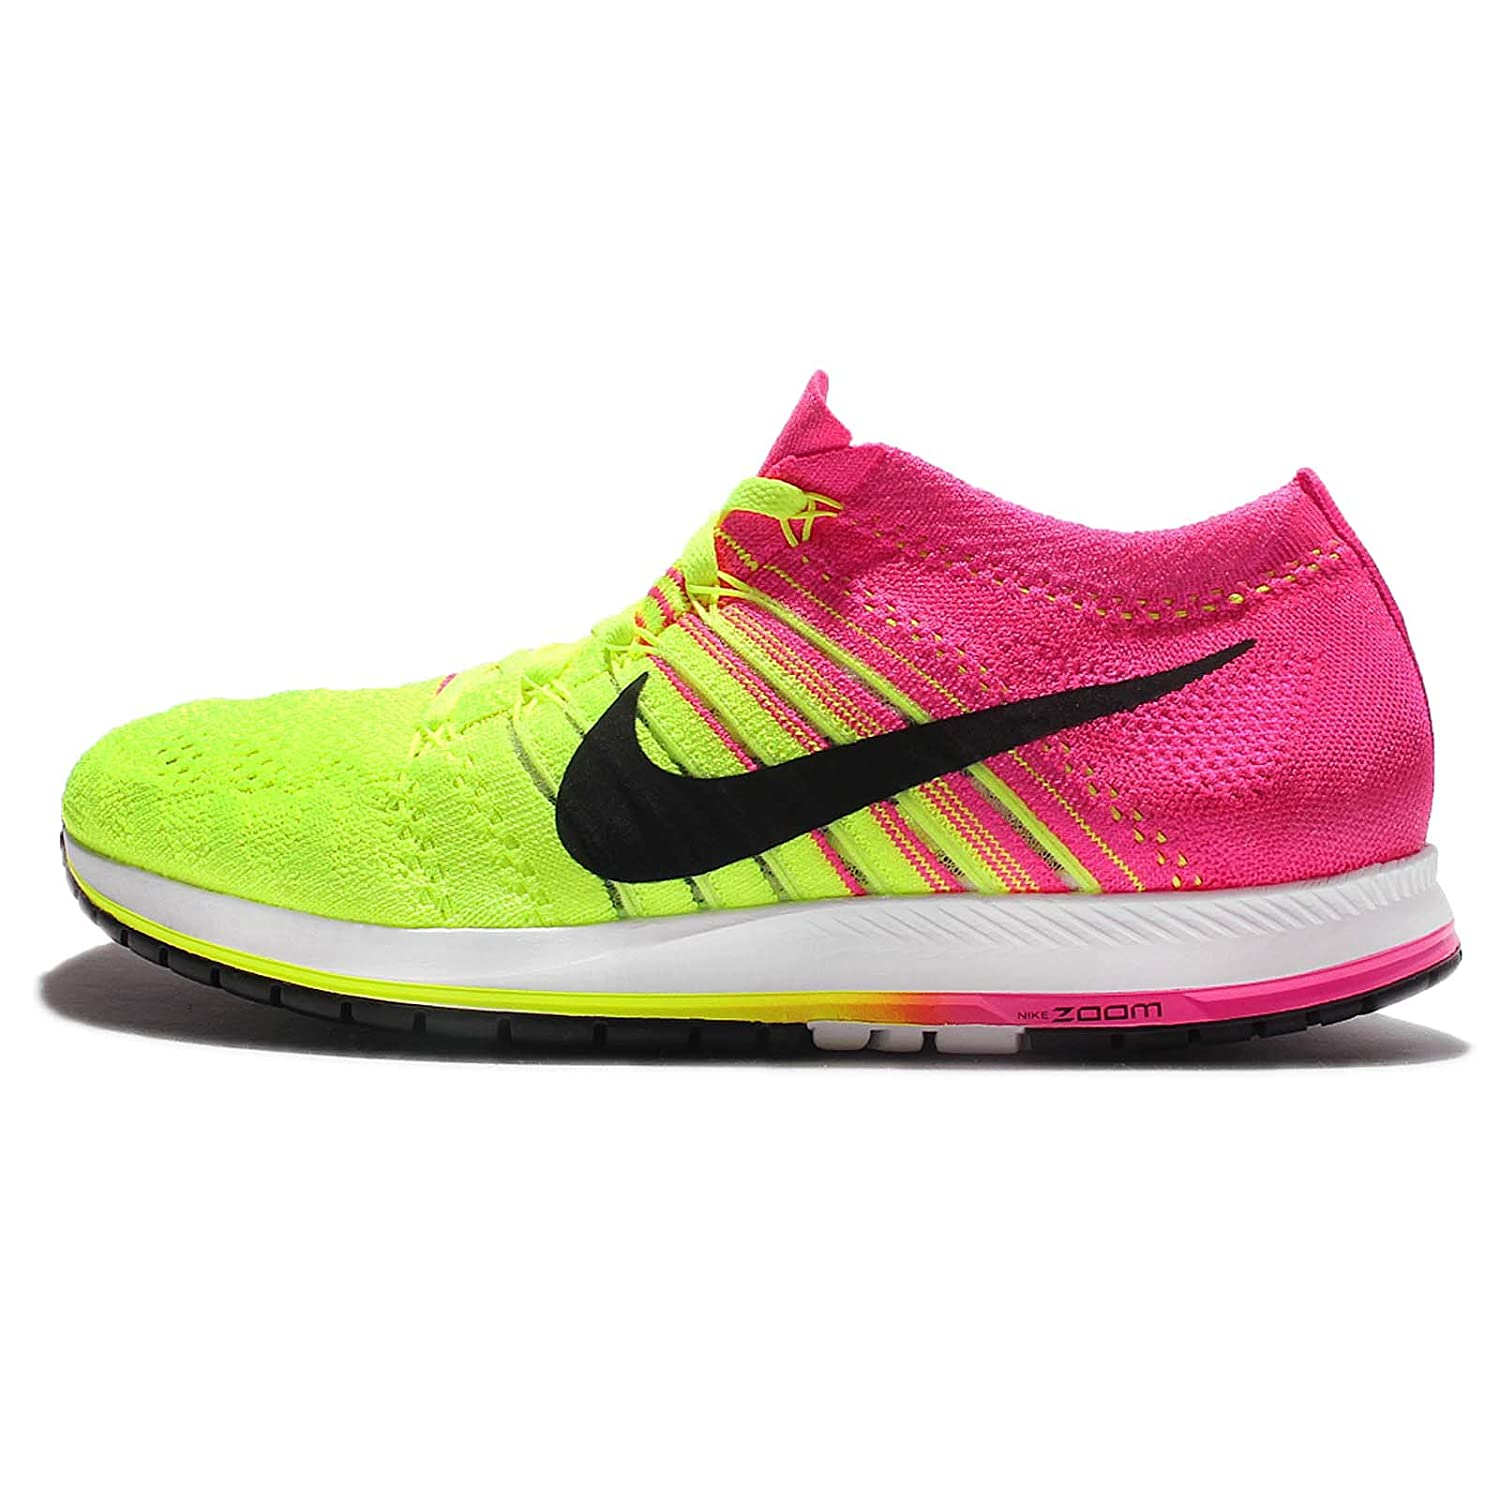 shades of fashion style lace up in Nike Men's Flyknit Streak, Multi-Color/Multi-Color, 12 M US